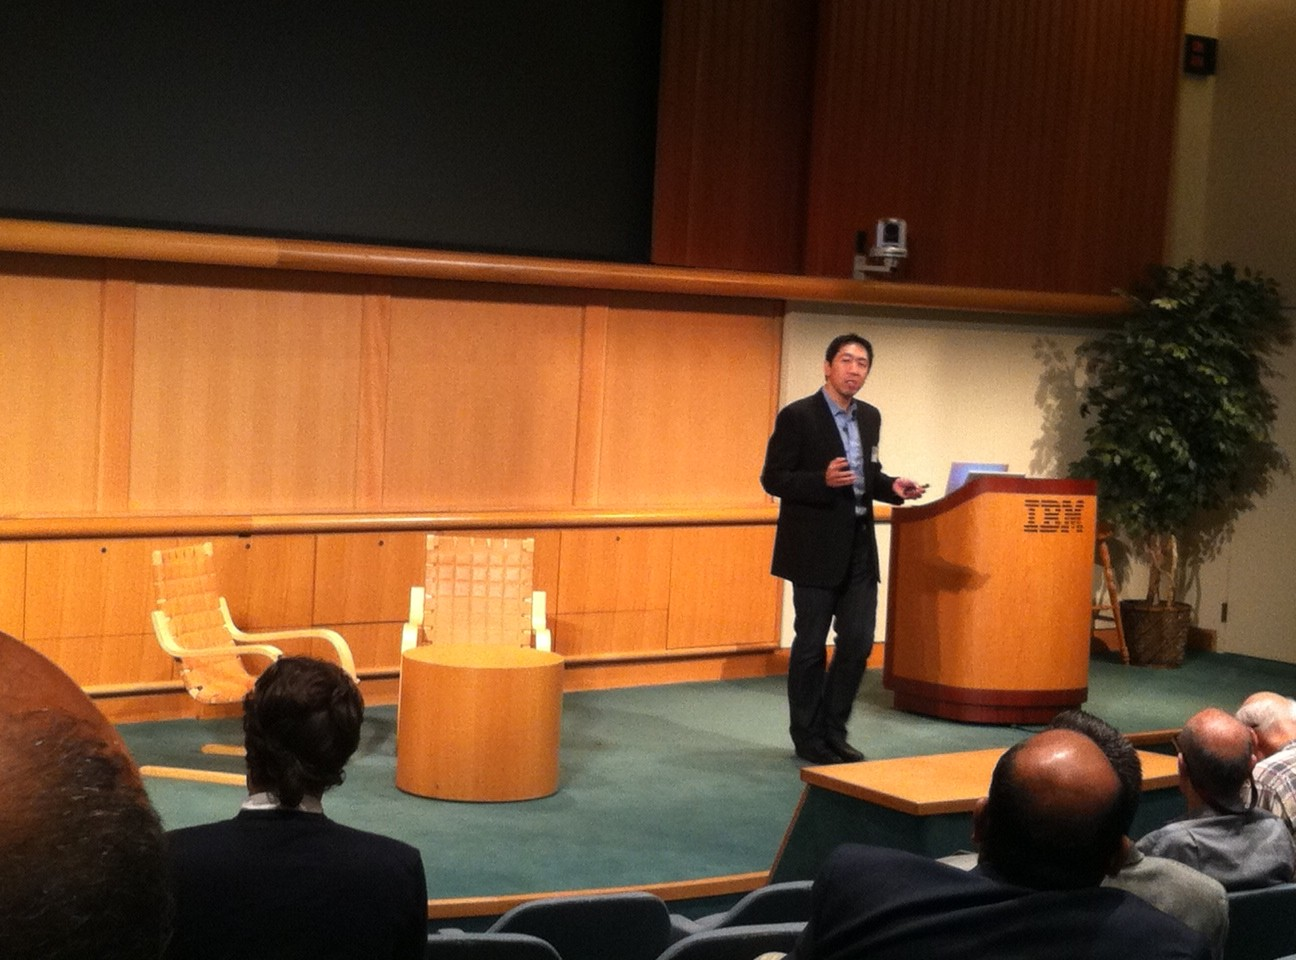 Andrew Ng, a co-founder of Coursera, at an IBM research event